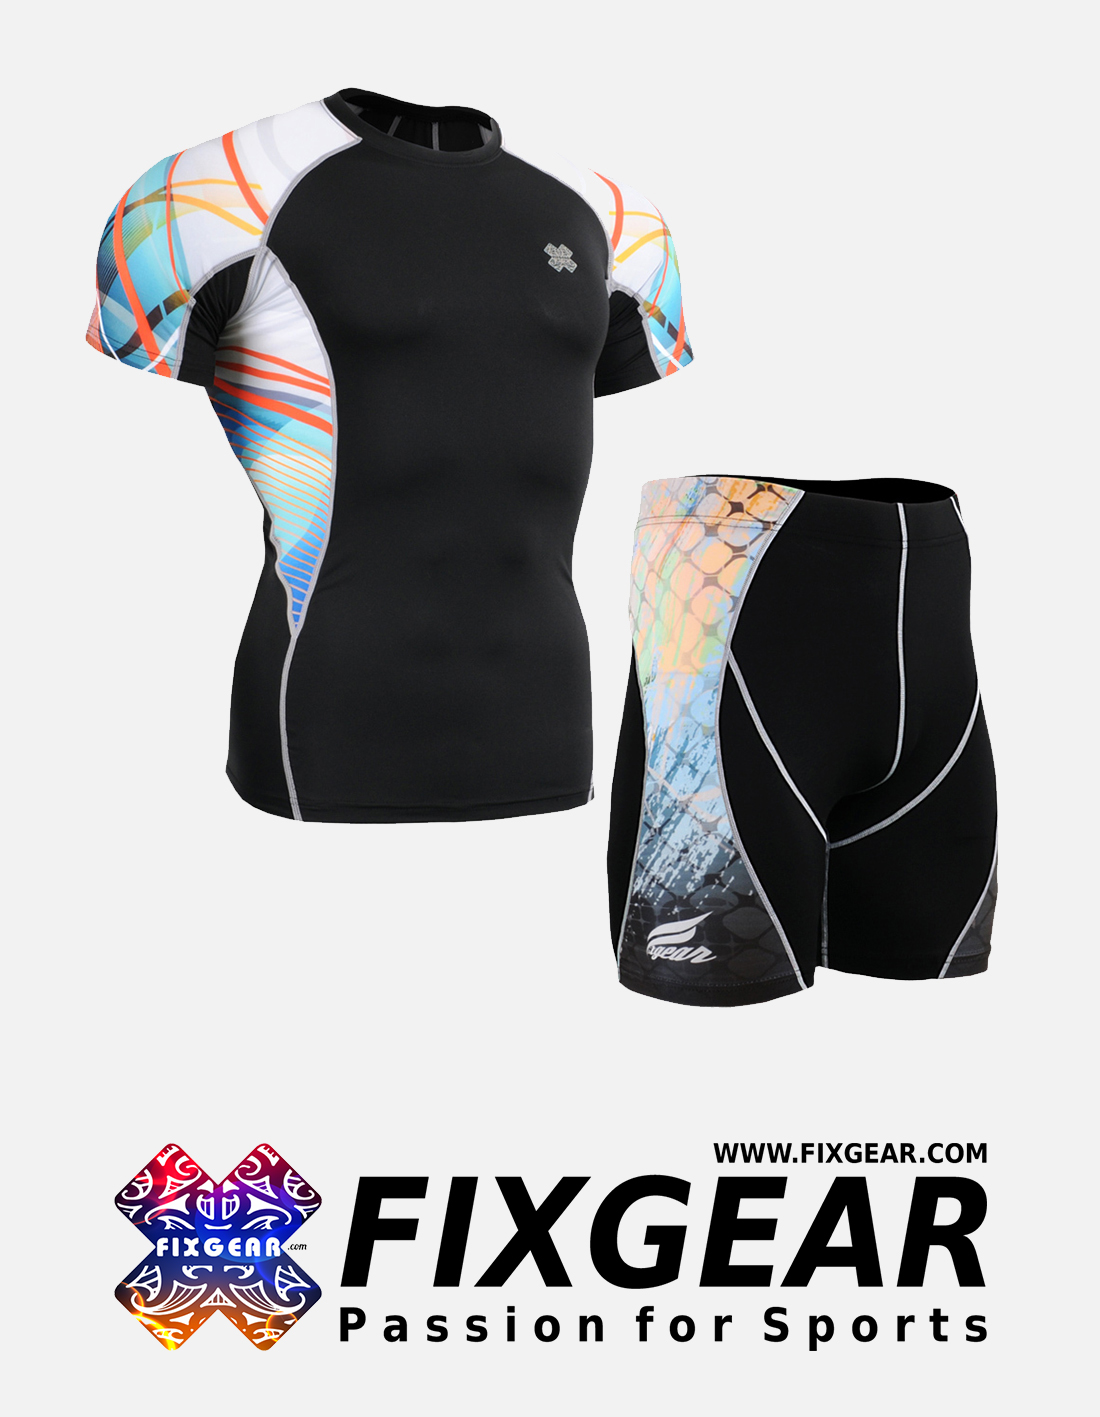 FIXGEAR C2S-P2S-B49 Set Compression Base Layer Shirt & Compression Drawer Shorts